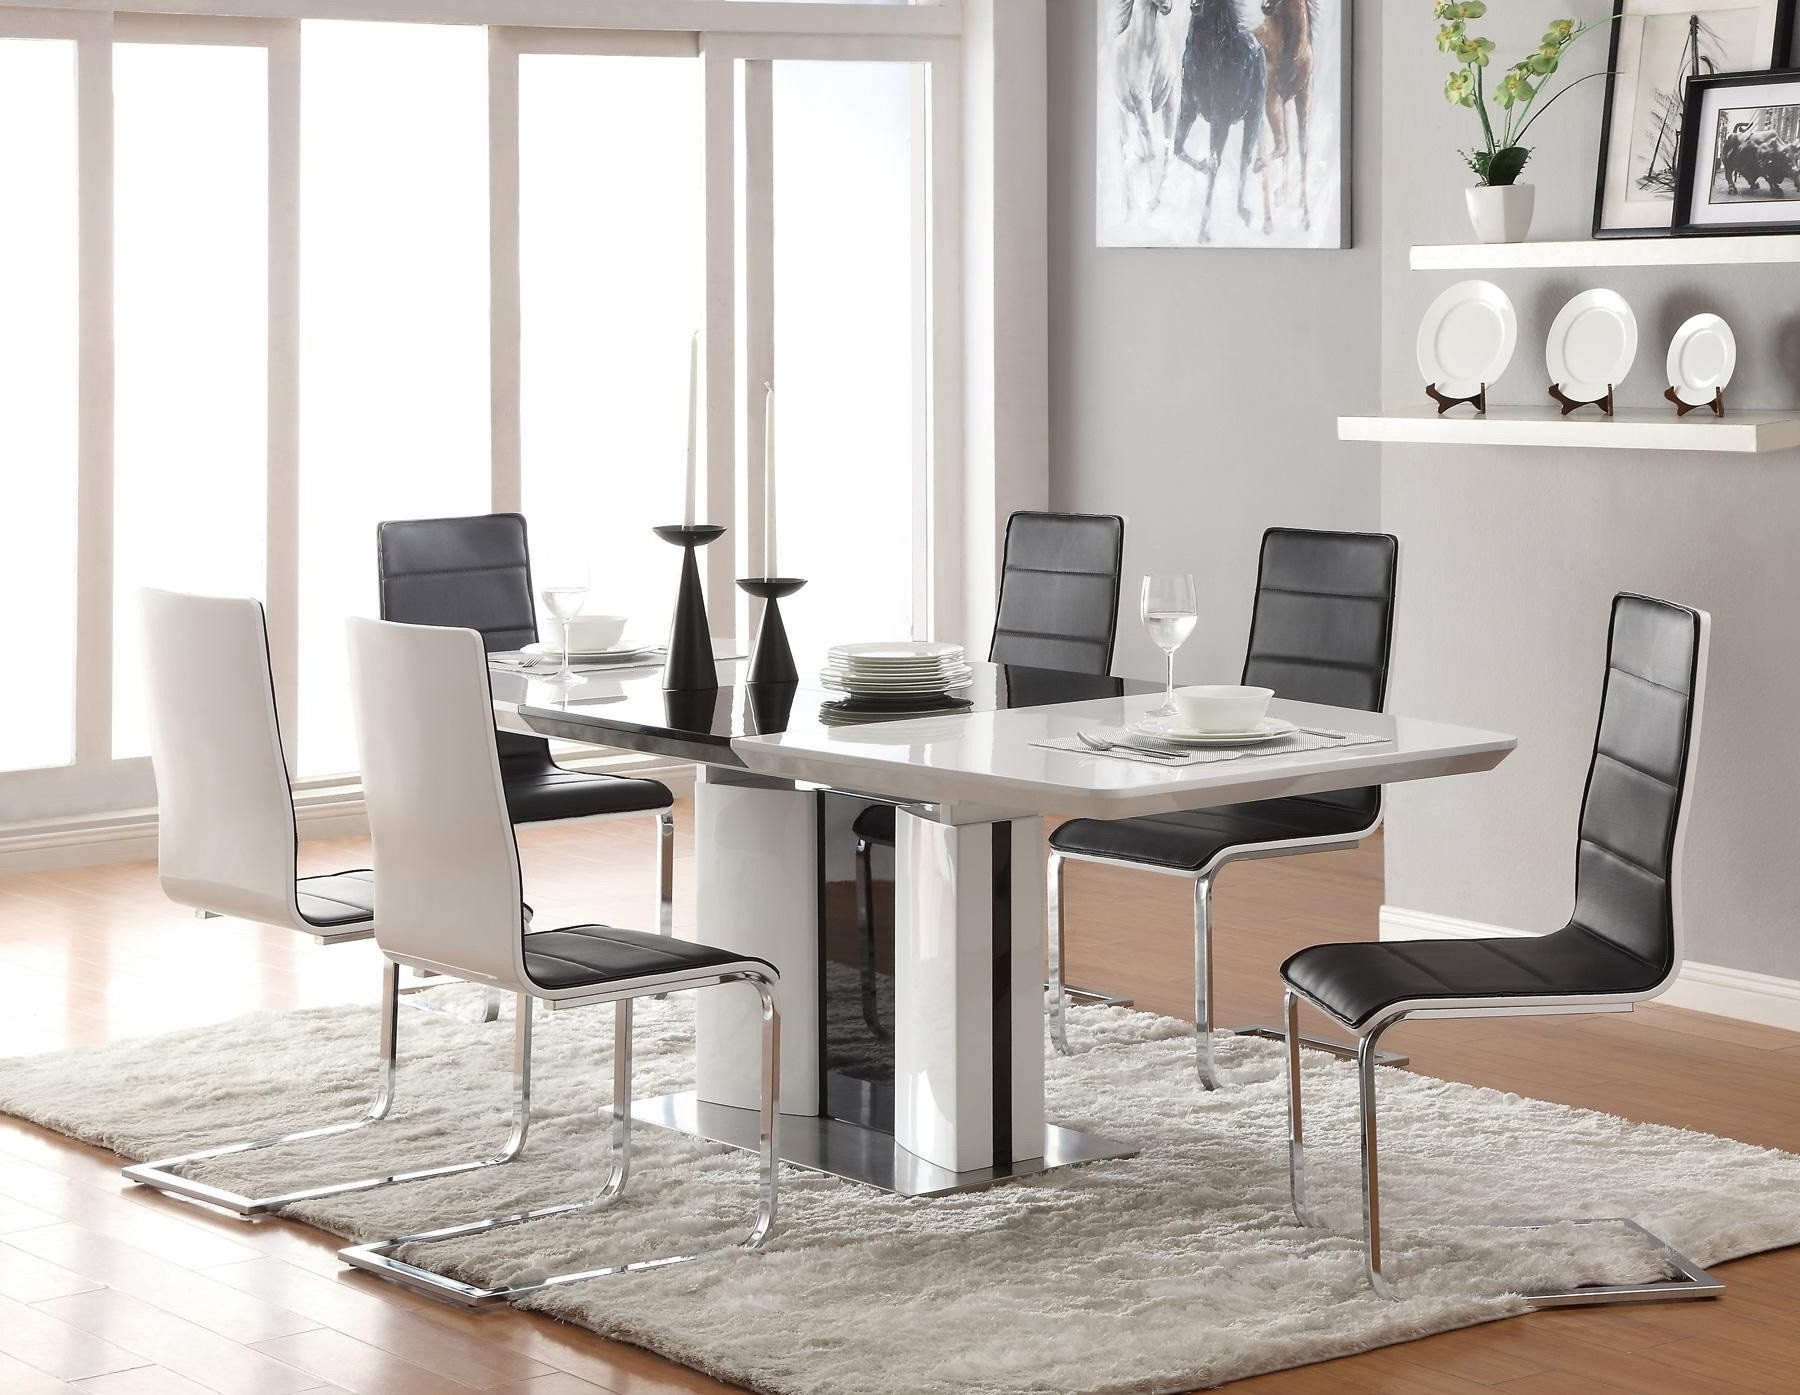 2018 Contemporary Dining Tables Sets With Regard To Modern Italian Dining Room Furniture Sets With Black And White (Gallery 8 of 25)